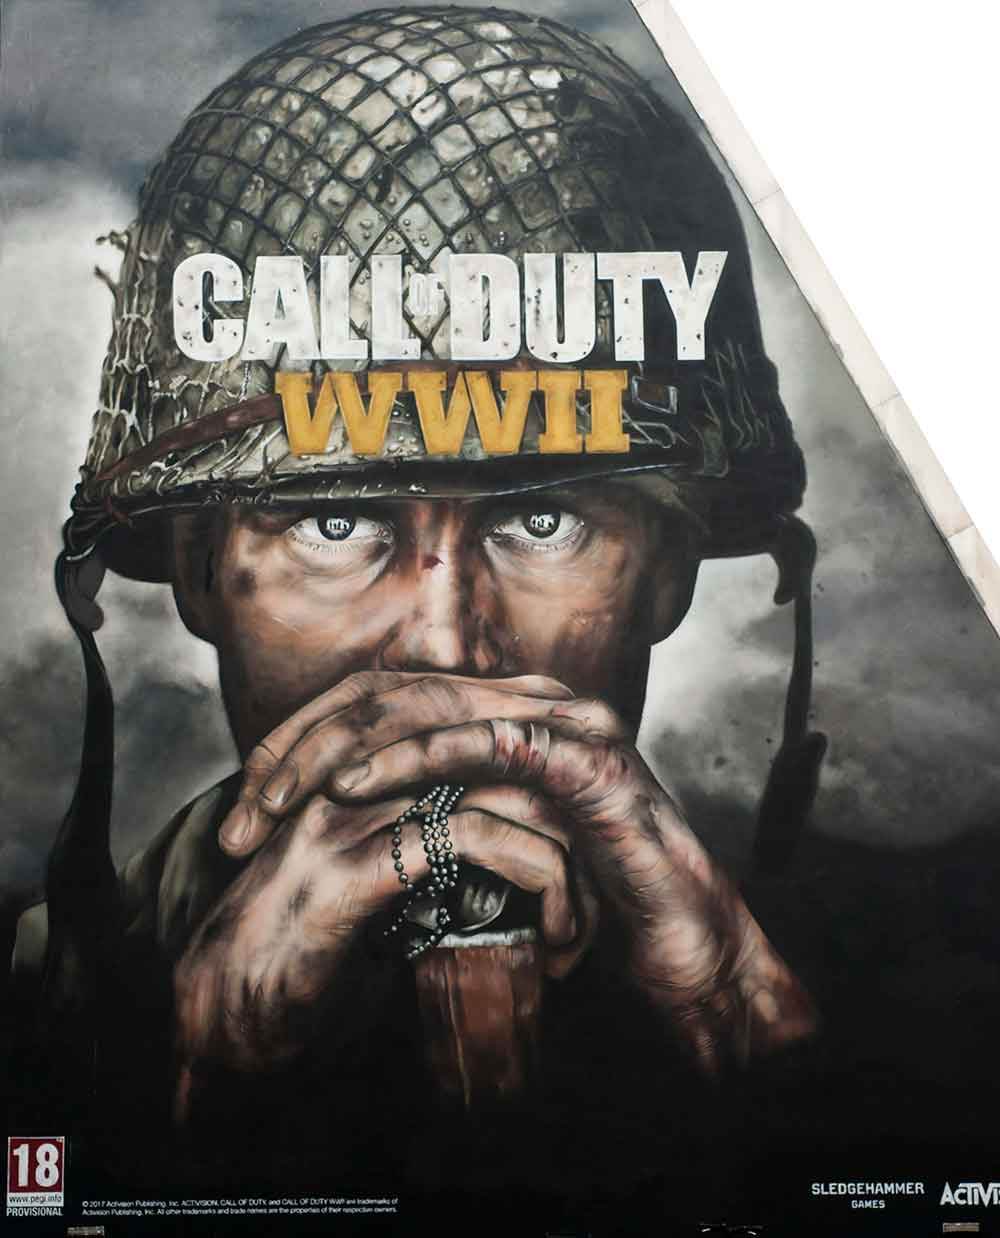 ACTIVISION - CALL OF DUTY